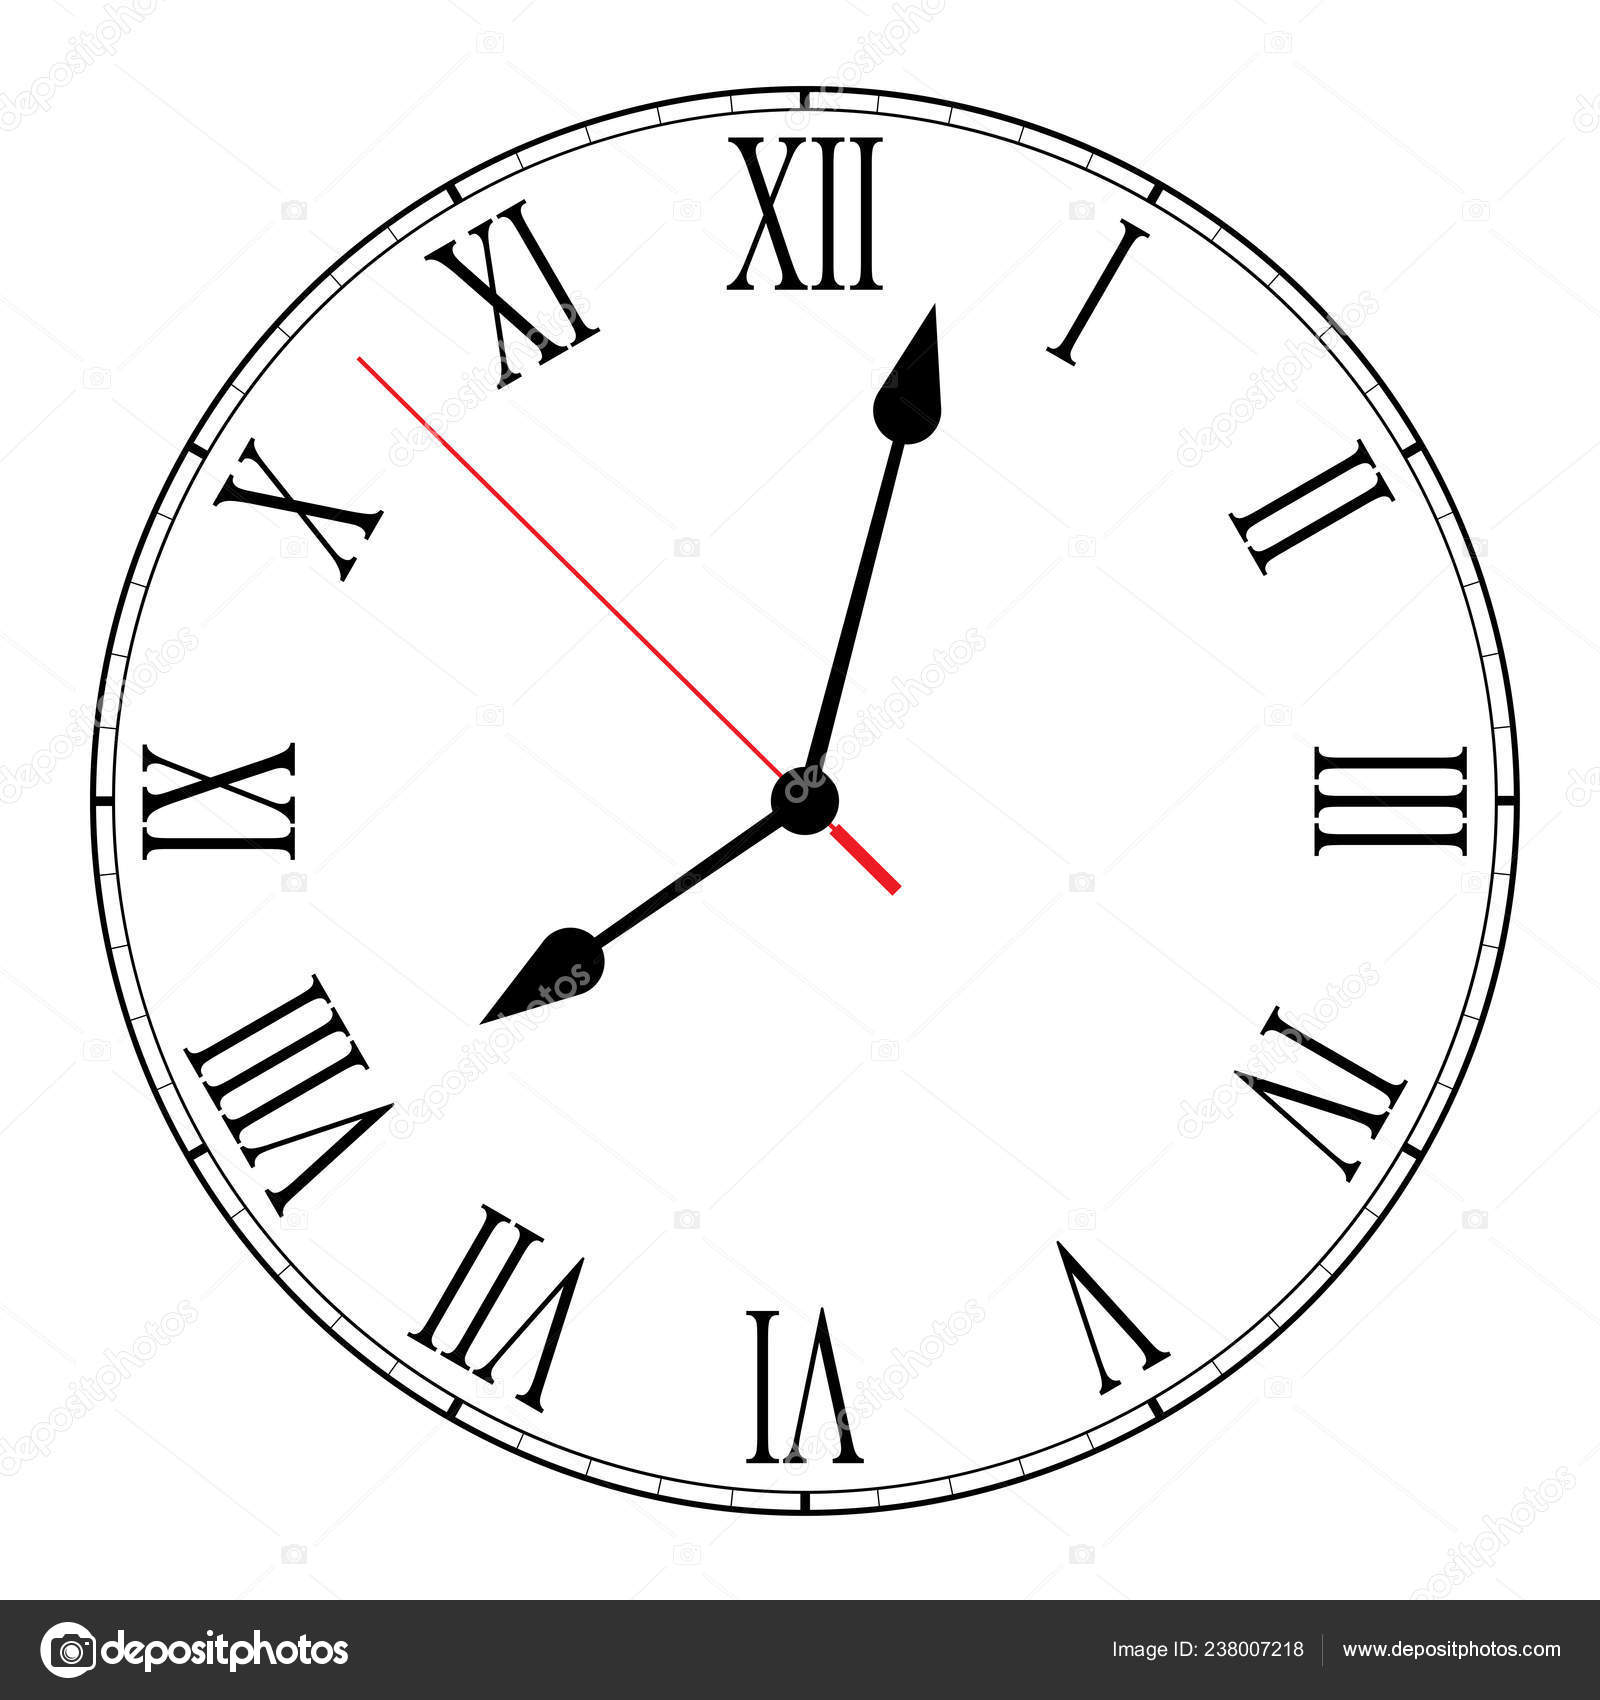 photo regarding Printable Clock Face With Hands called Printable clock encounter roman numerals Vector Example